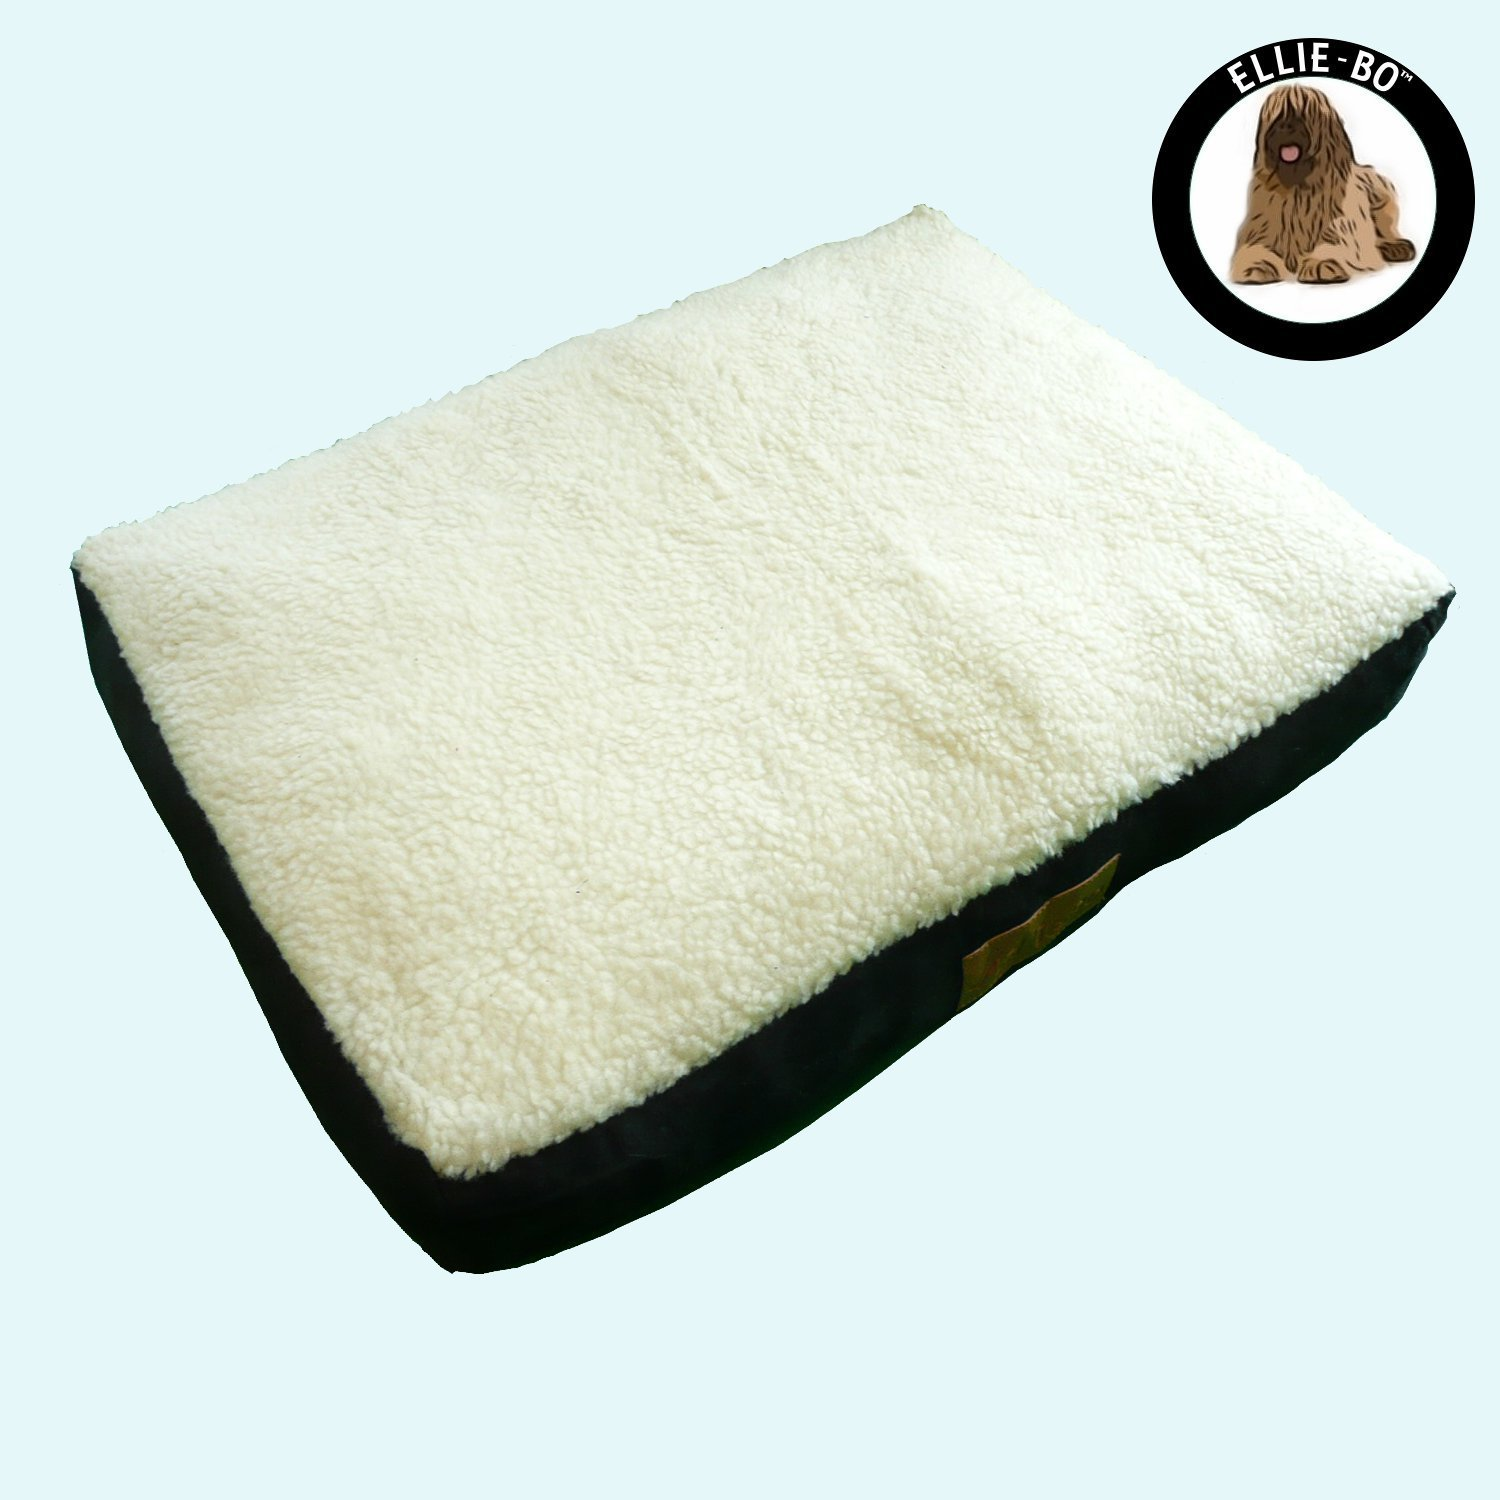 ellie-bo xxl black dog bed with faux suede and sheepskin topping